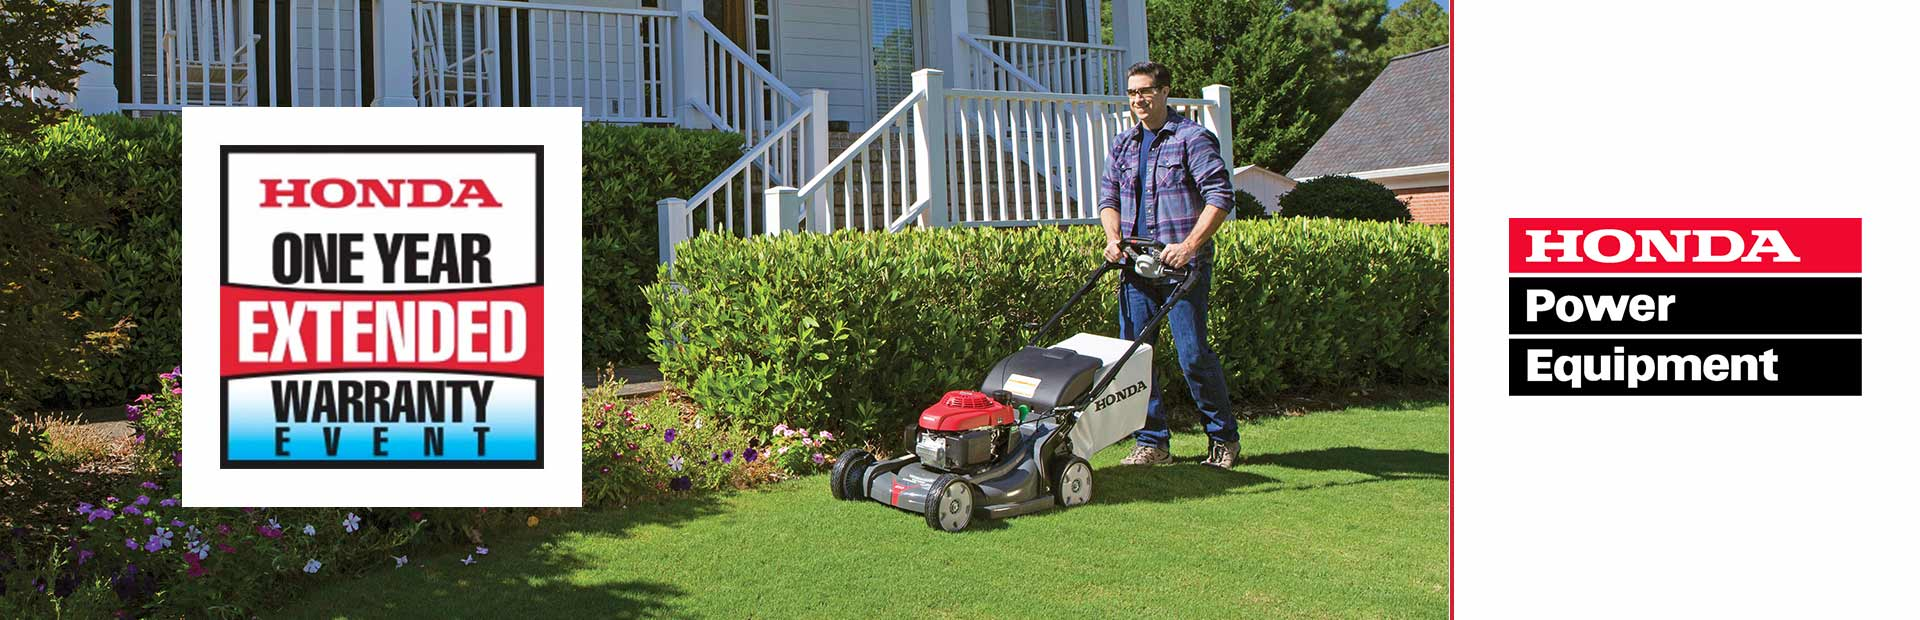 One Year Extended Warranty on Residential Mowers